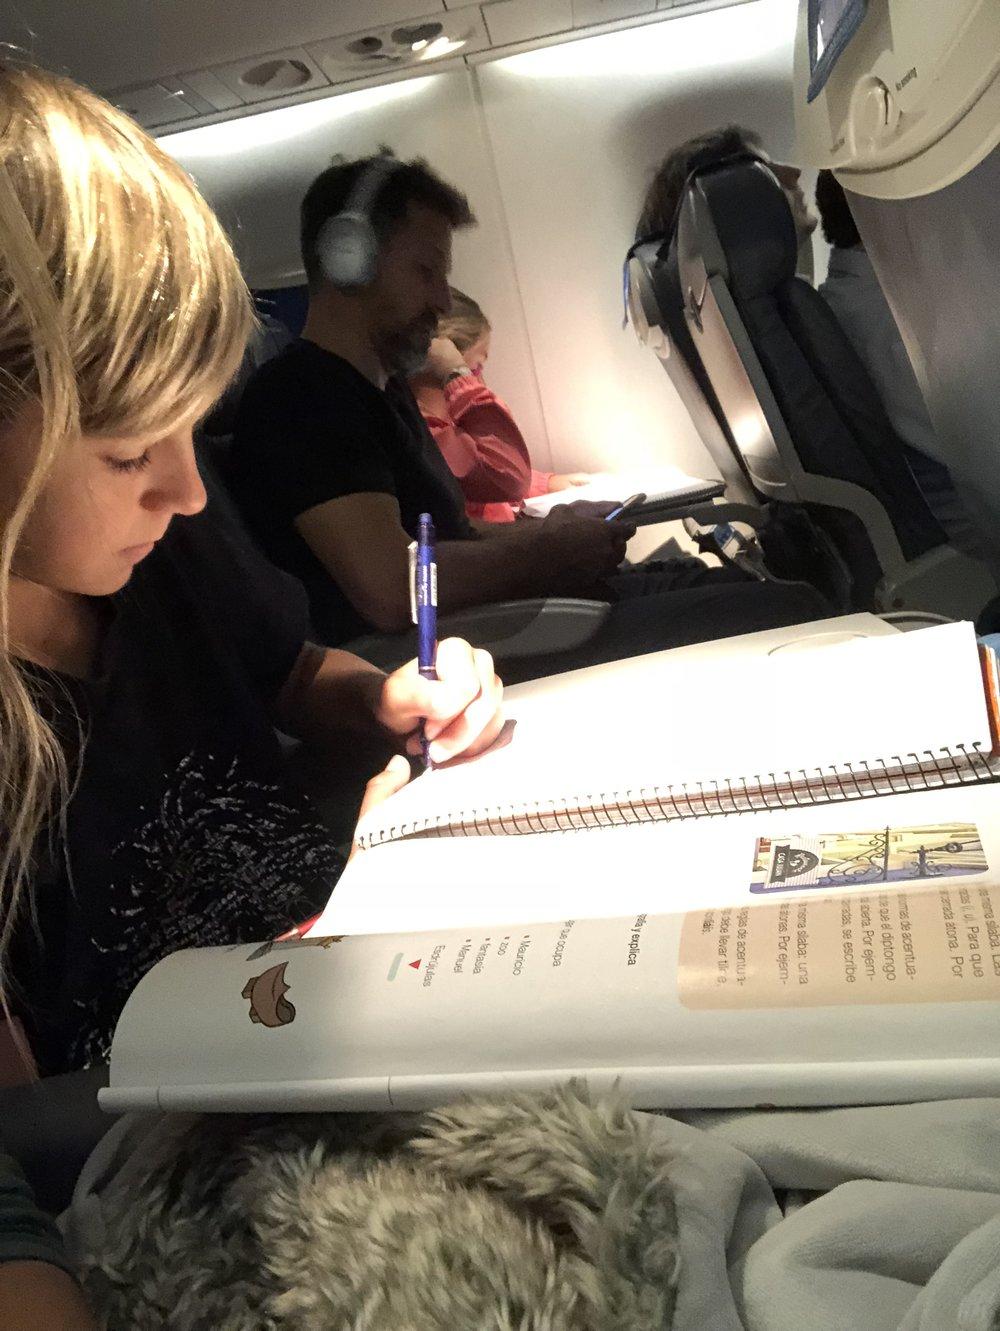 Working on their homework - On the airplane.